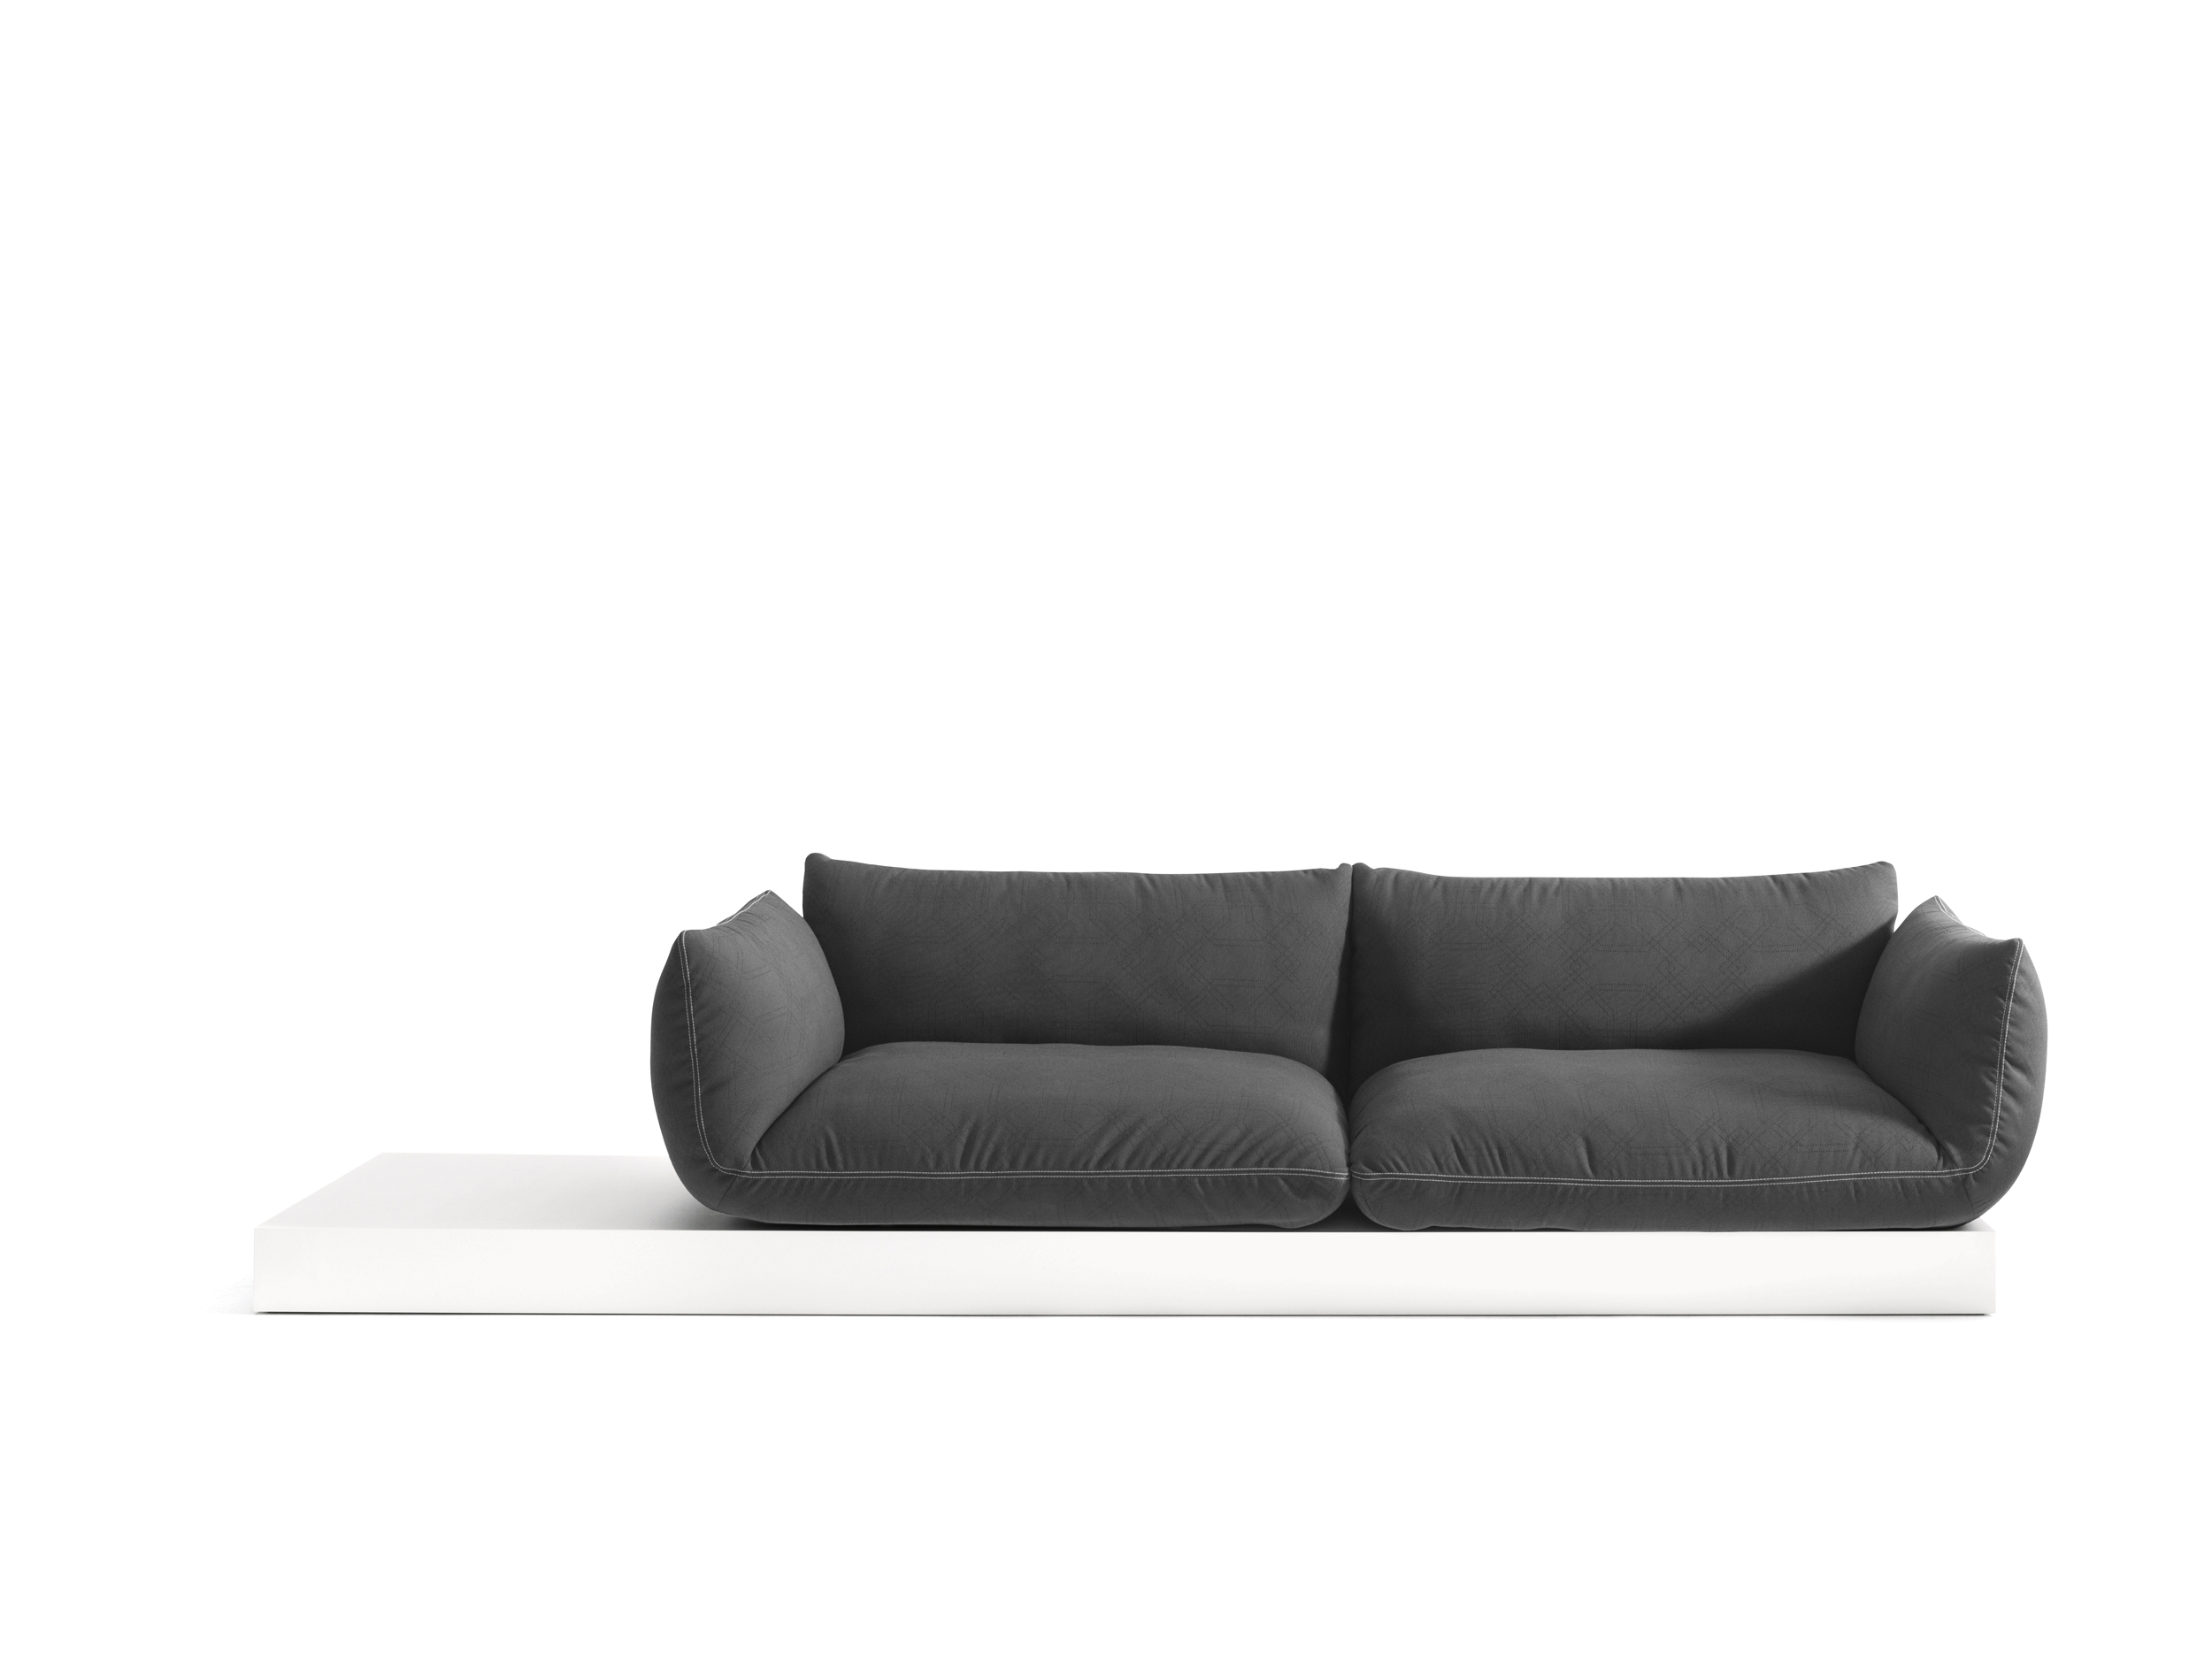 sofa bilder great sofa furniture isolated on white background with sofa bilder affordable. Black Bedroom Furniture Sets. Home Design Ideas